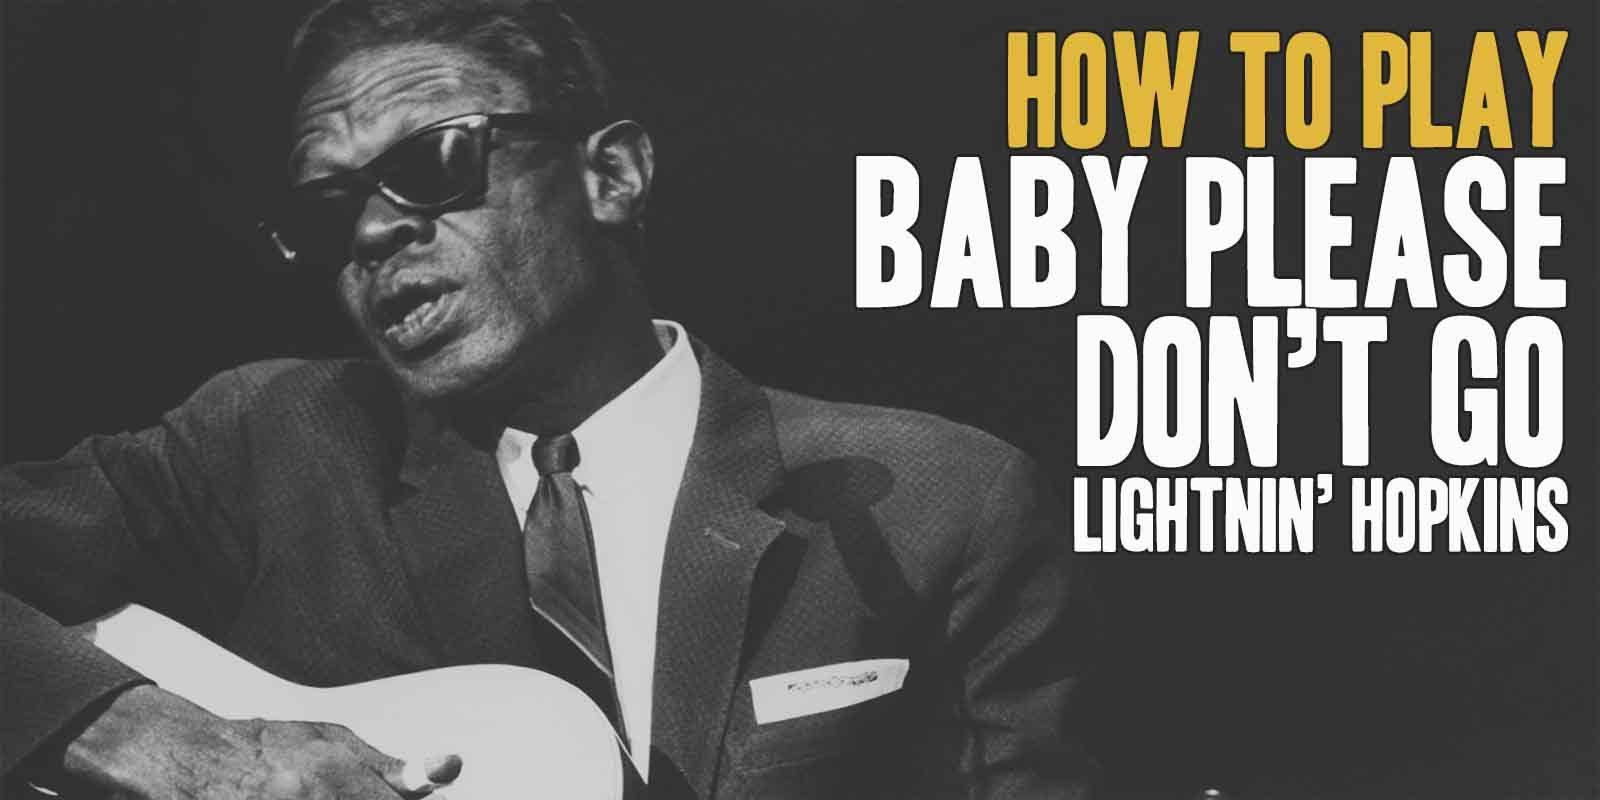 How To Play Baby Please Don't Go (Lightnin Hopkins) Burninguitar show you how to play Baby Please Don't Go by Lightnin Hopkins.A great song of Delta Blues Guitar.Music Score included in pdf and in guitar pro tab. Baby Please Don't Go lesson include 5 videos and music sheets available for download (both Baby Please Don't Go pdf and Baby Please Don't Go gpx)